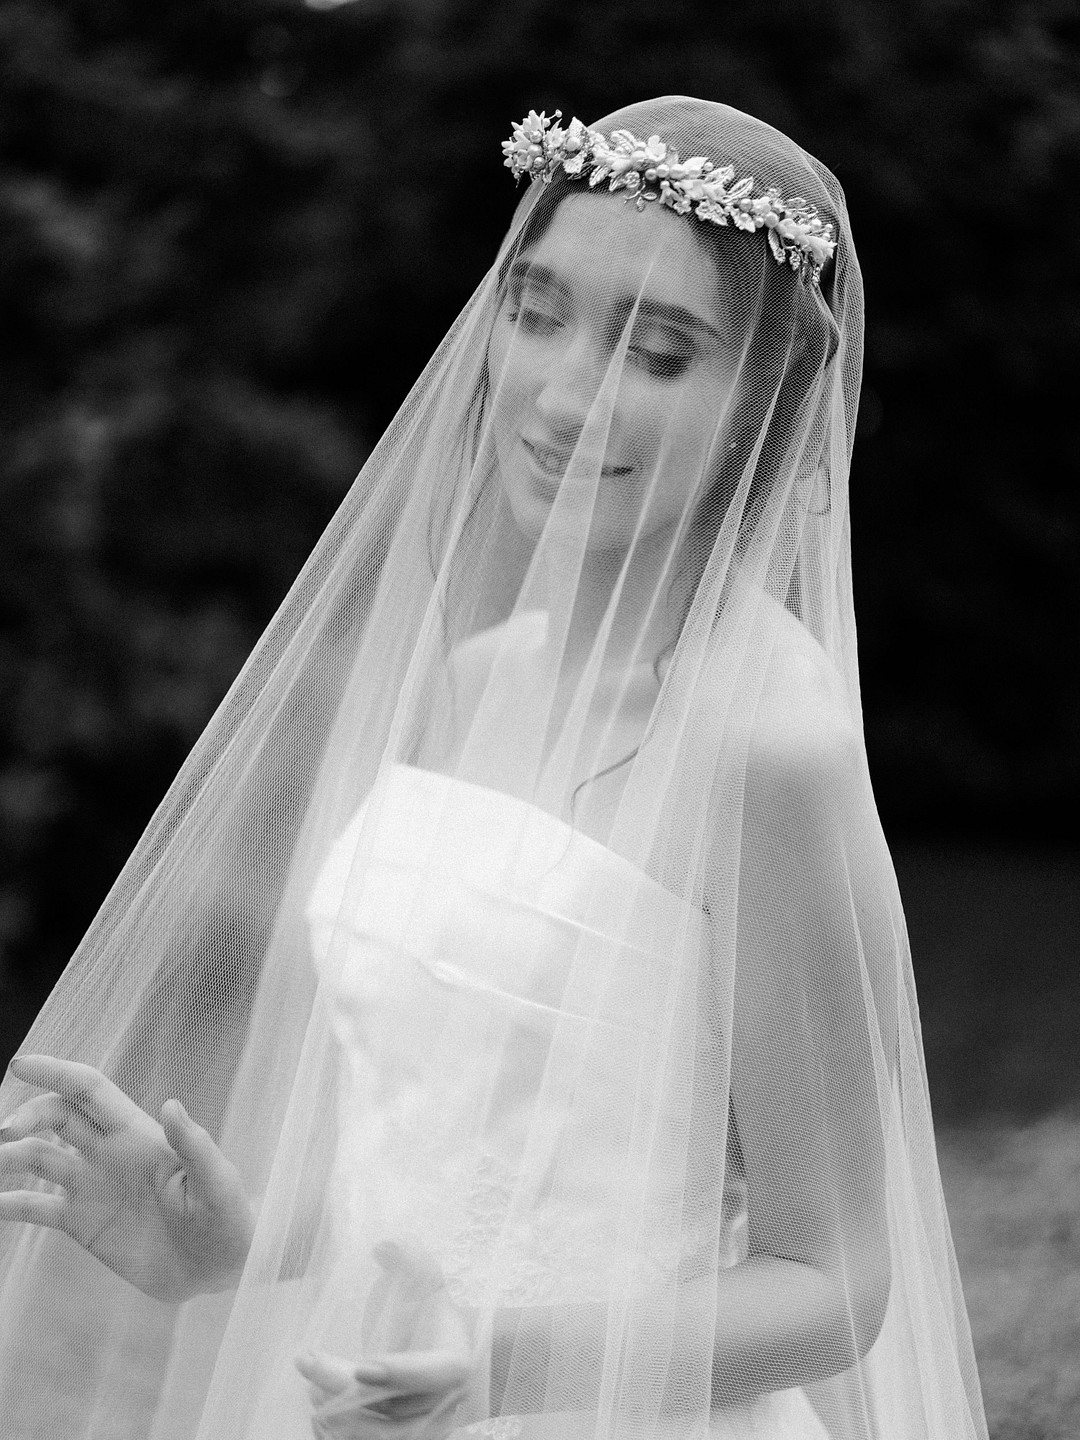 black and white photo of a bride and her veil